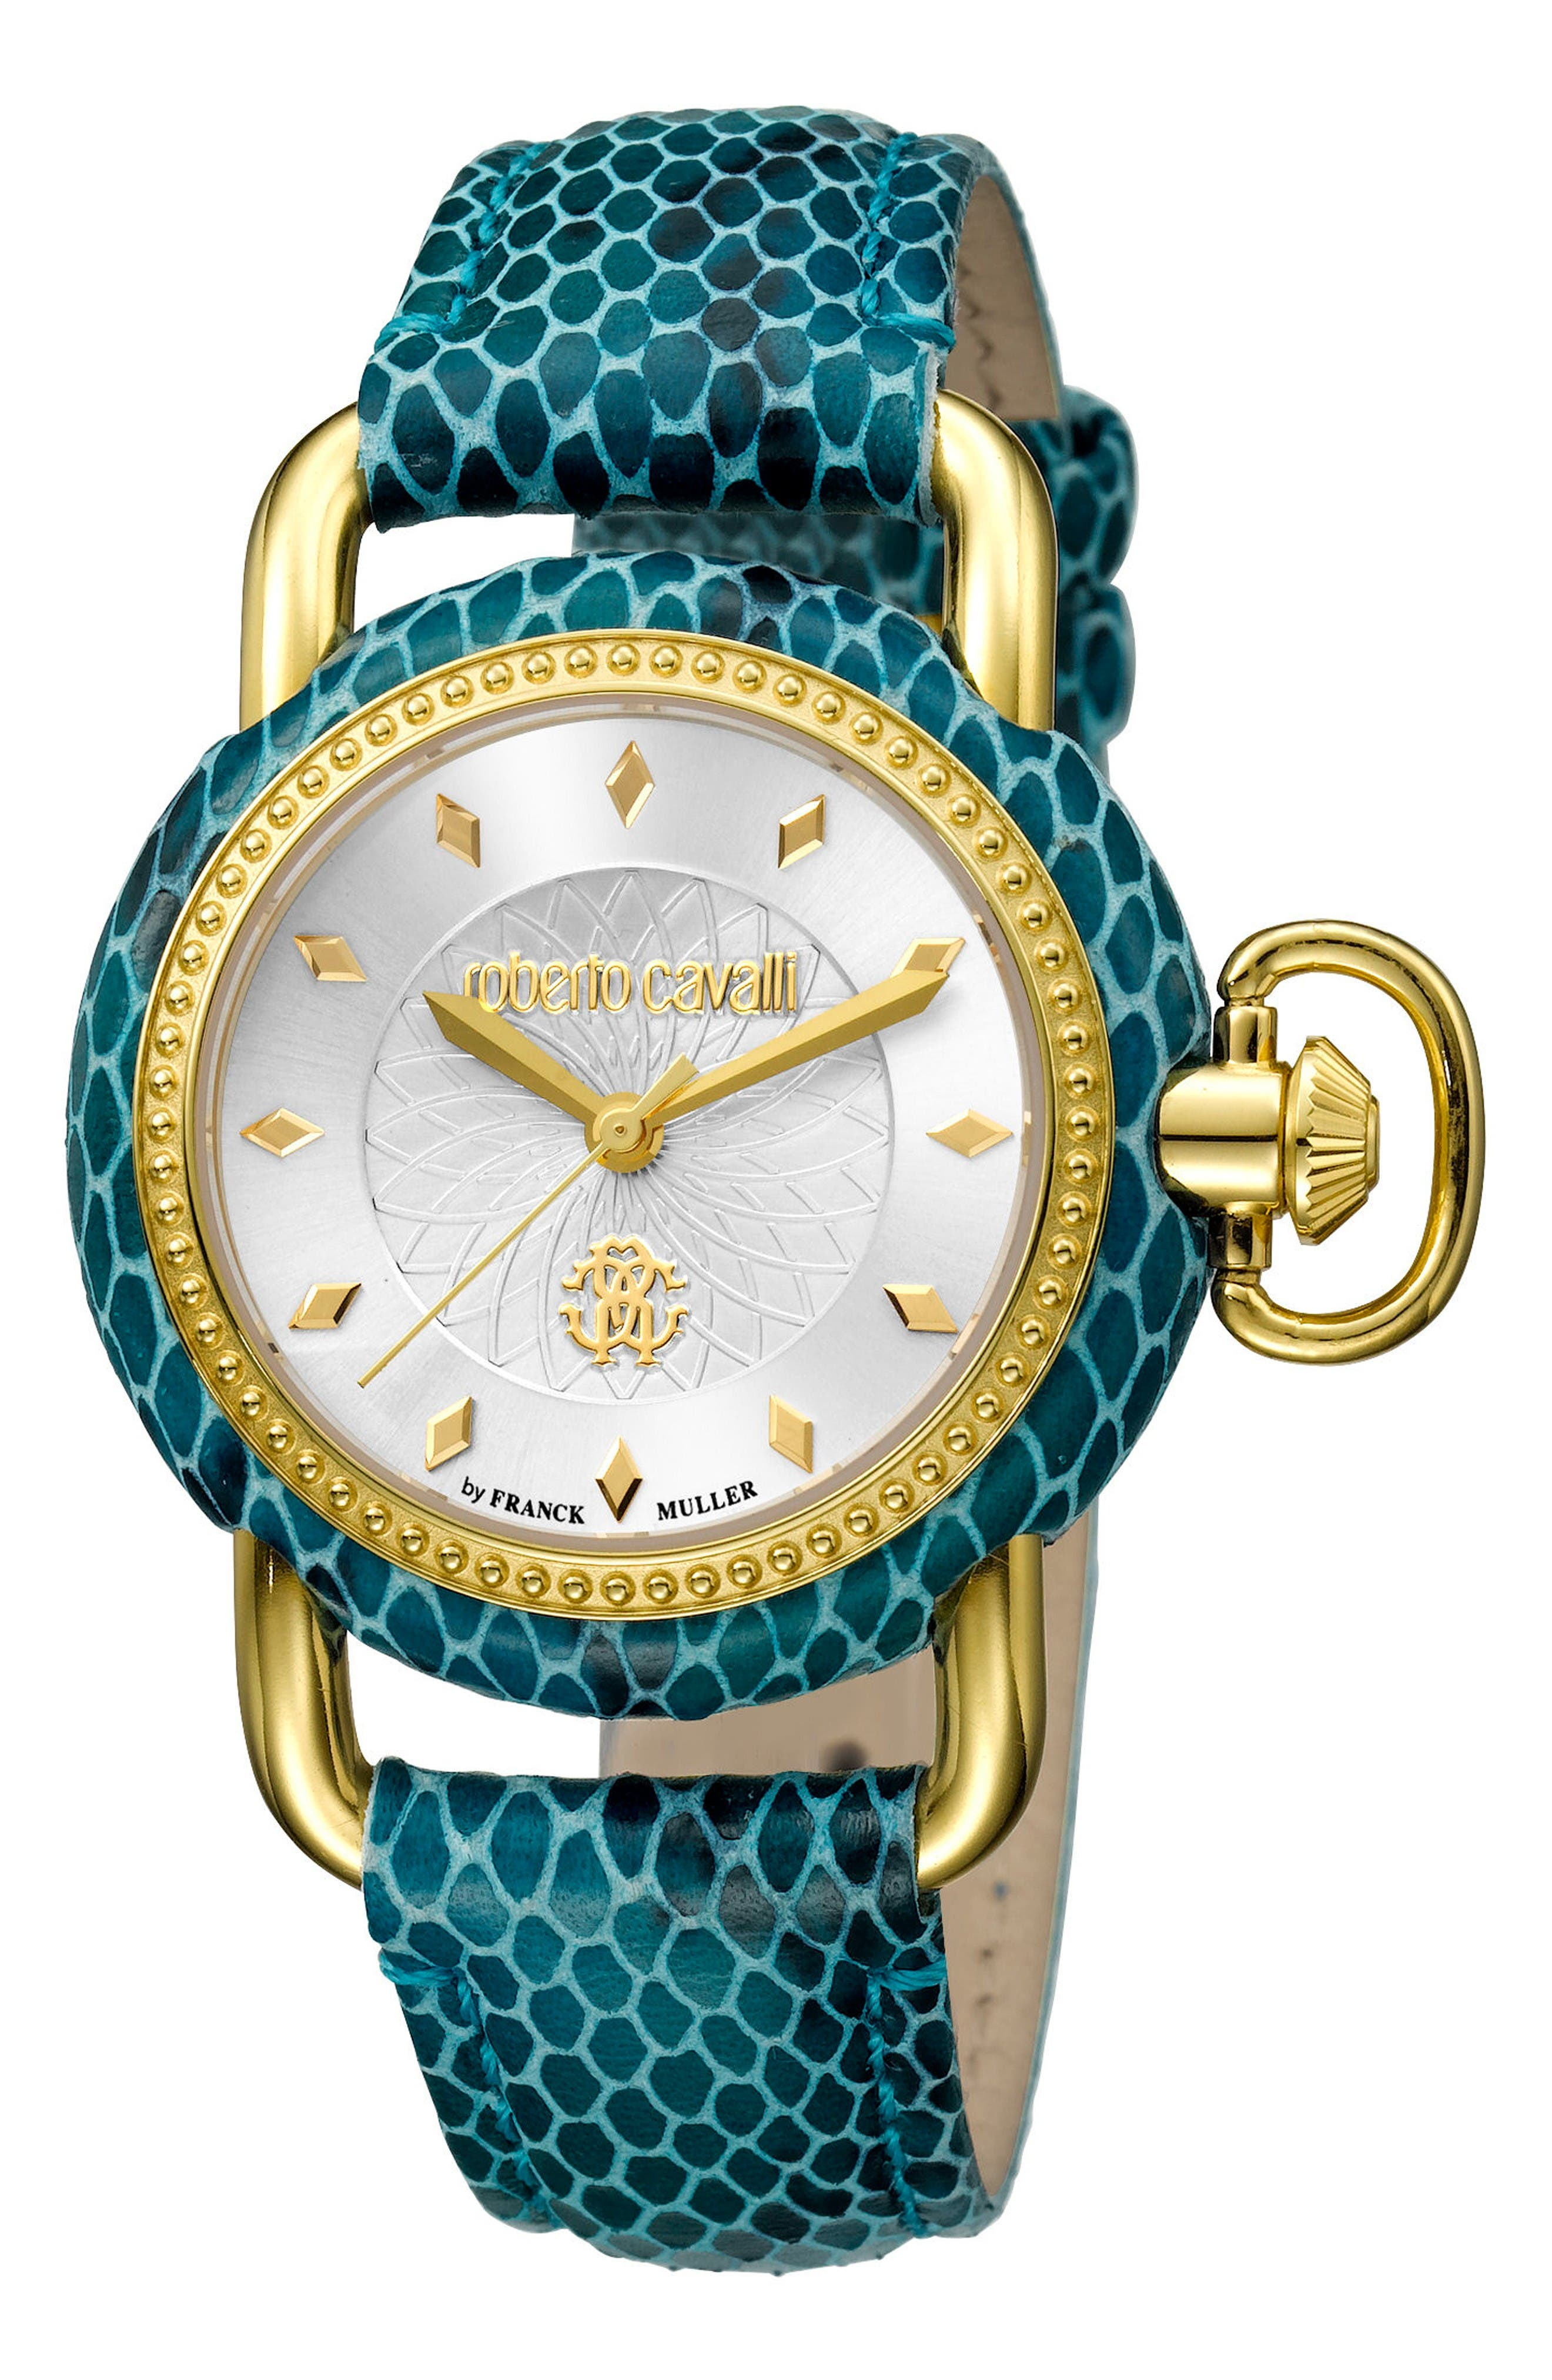 Main Image - Roberto Cavalli by Franck Muller Snake Leather Strap Watch, 36mm